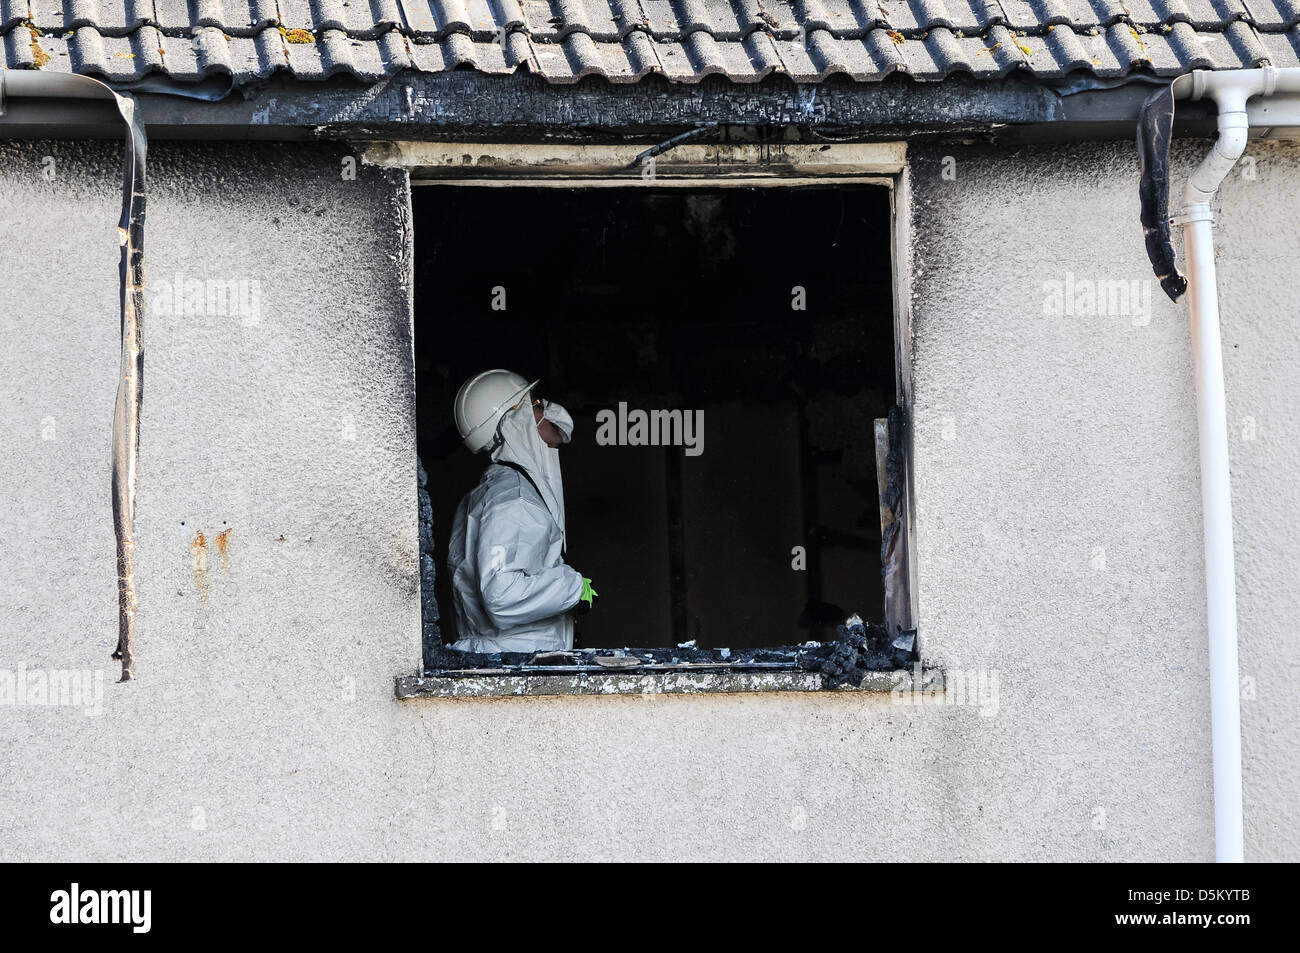 Fire investigation officers examine the scene of a fatal house fire to determine the cause of the incident. - Stock Image